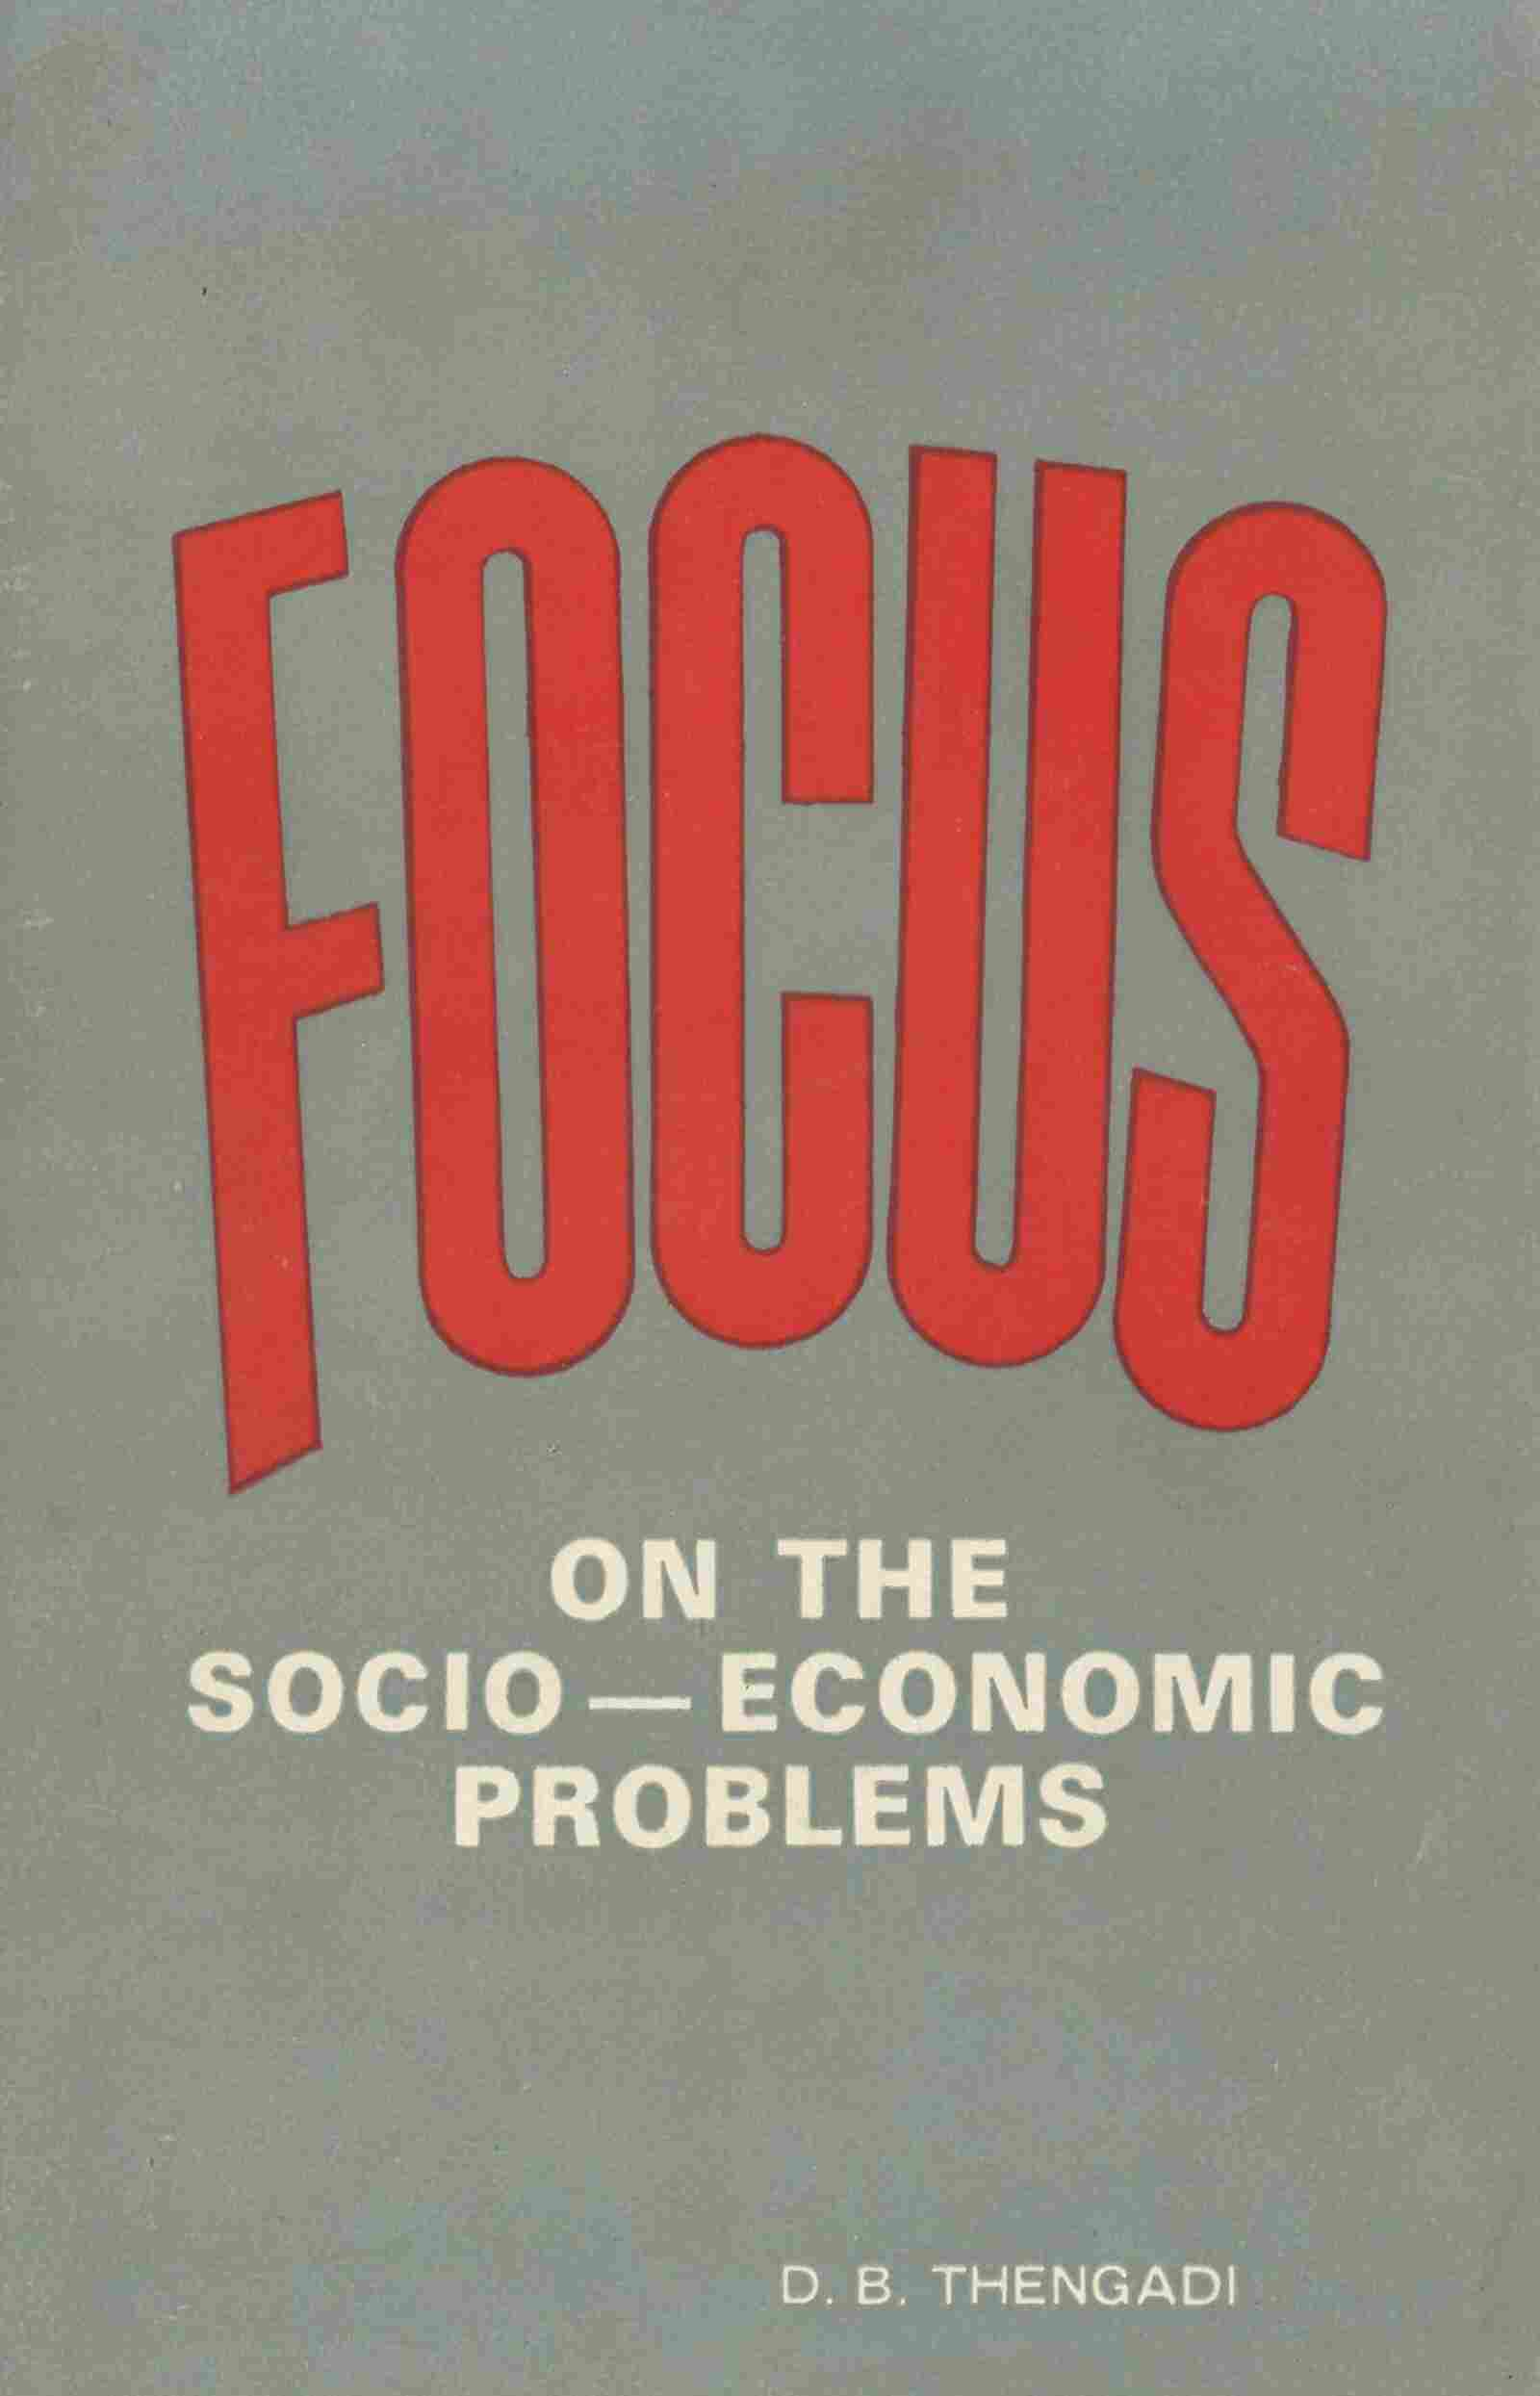 Focus-On The Socio-Economic Problems